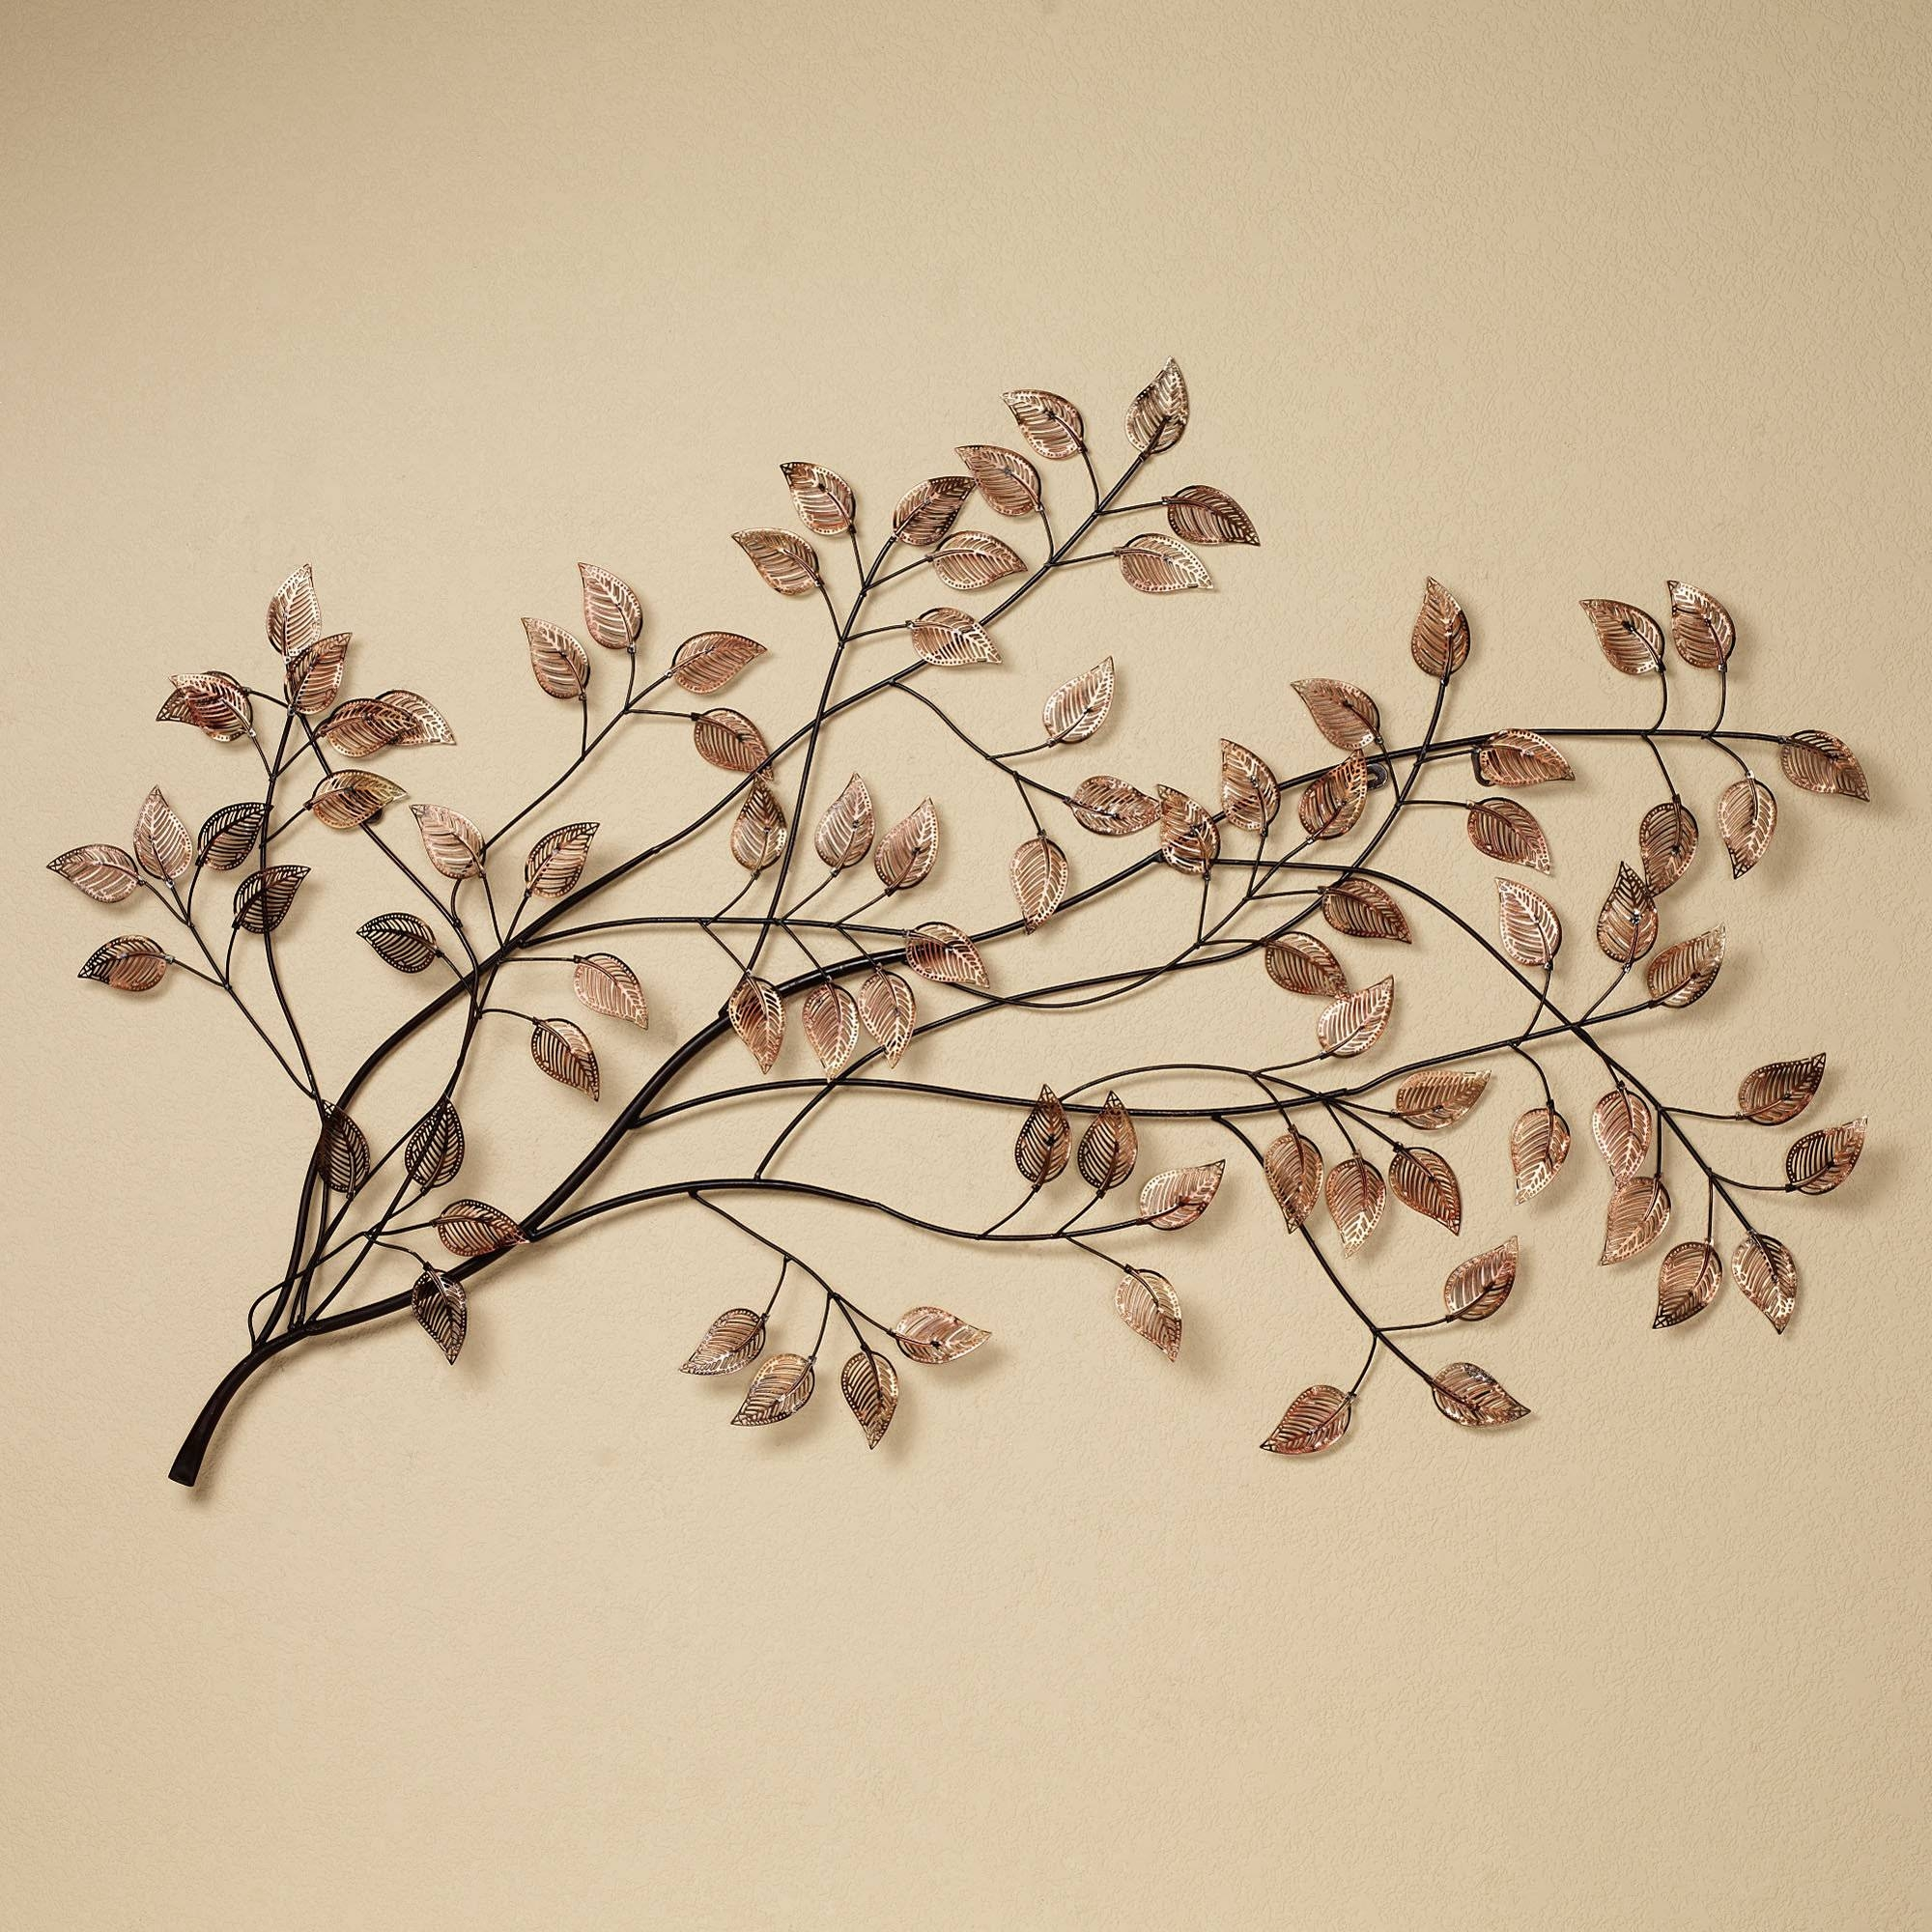 Awesome Natural Plant Design For Metal Wall Art And Decor Leaves With Regard To Current Metal Wall Artwork Decor (View 3 of 20)